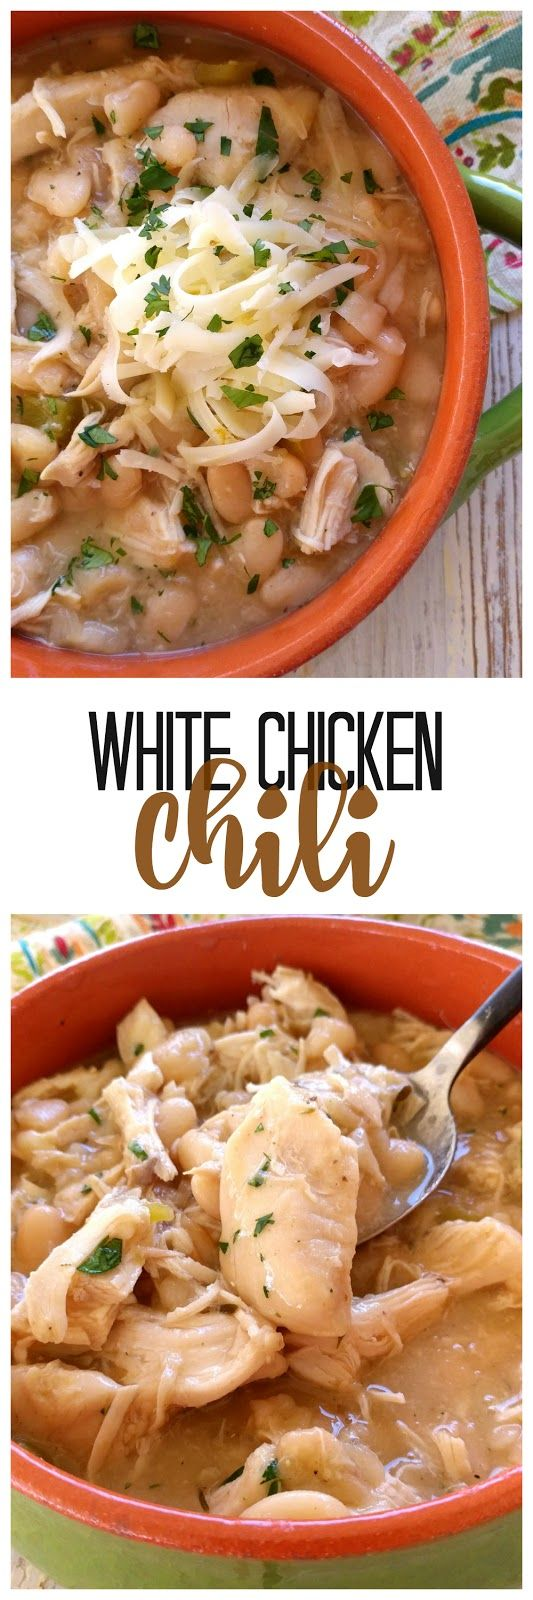 White Chicken Chili! Slow-cooked creamy great northern beans, tender chicken and tons of southwest flavor!